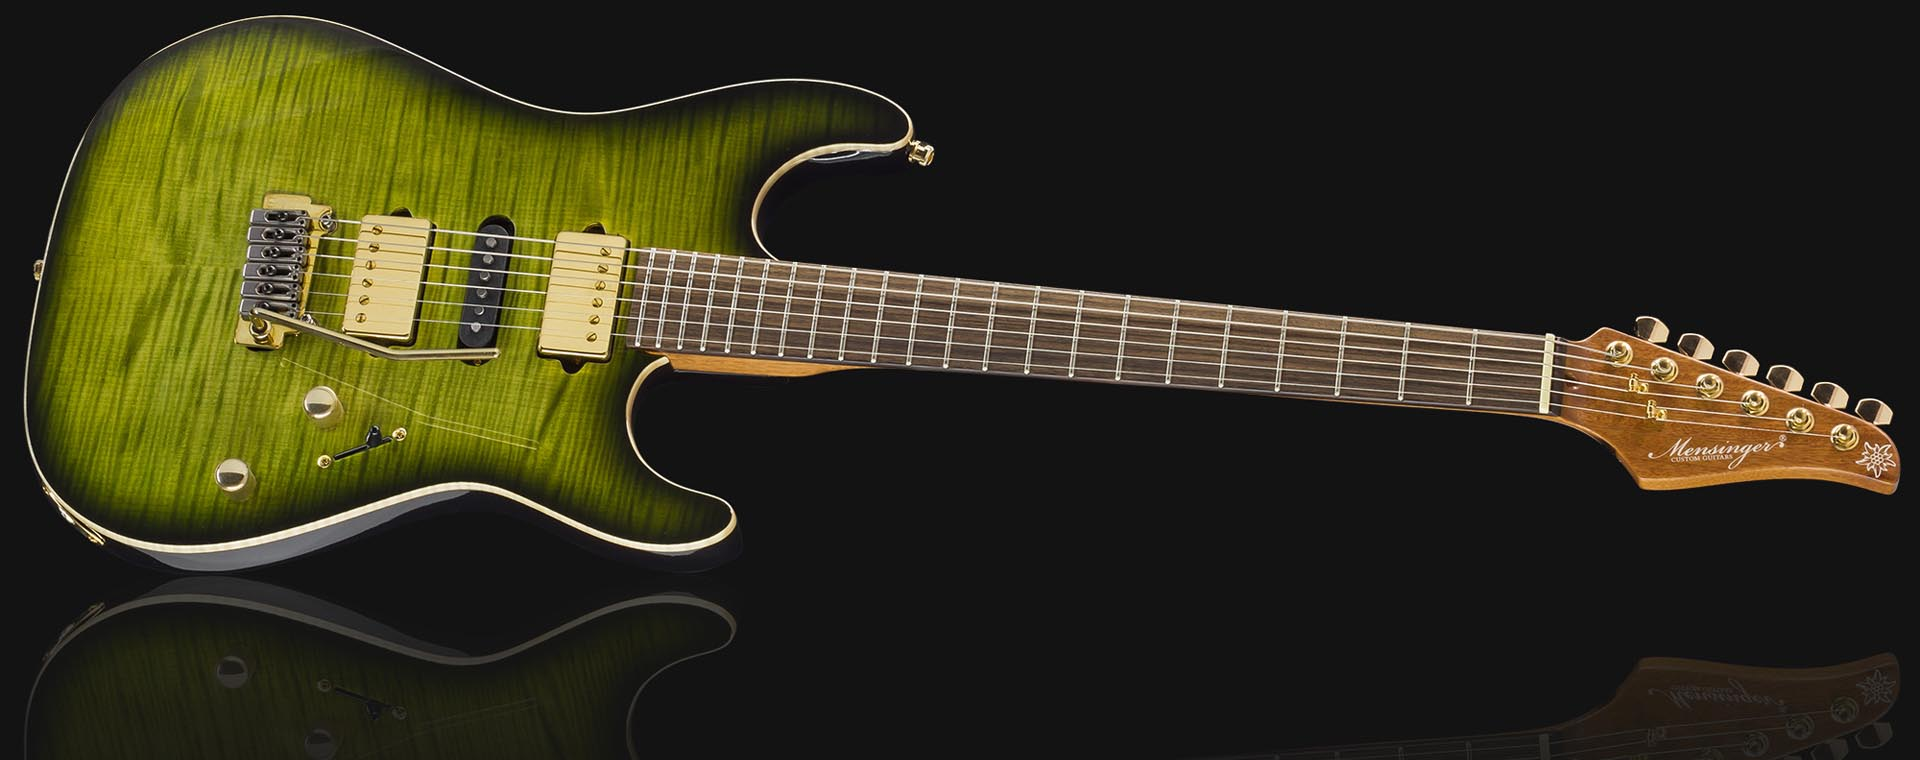 Lizard Greenburst